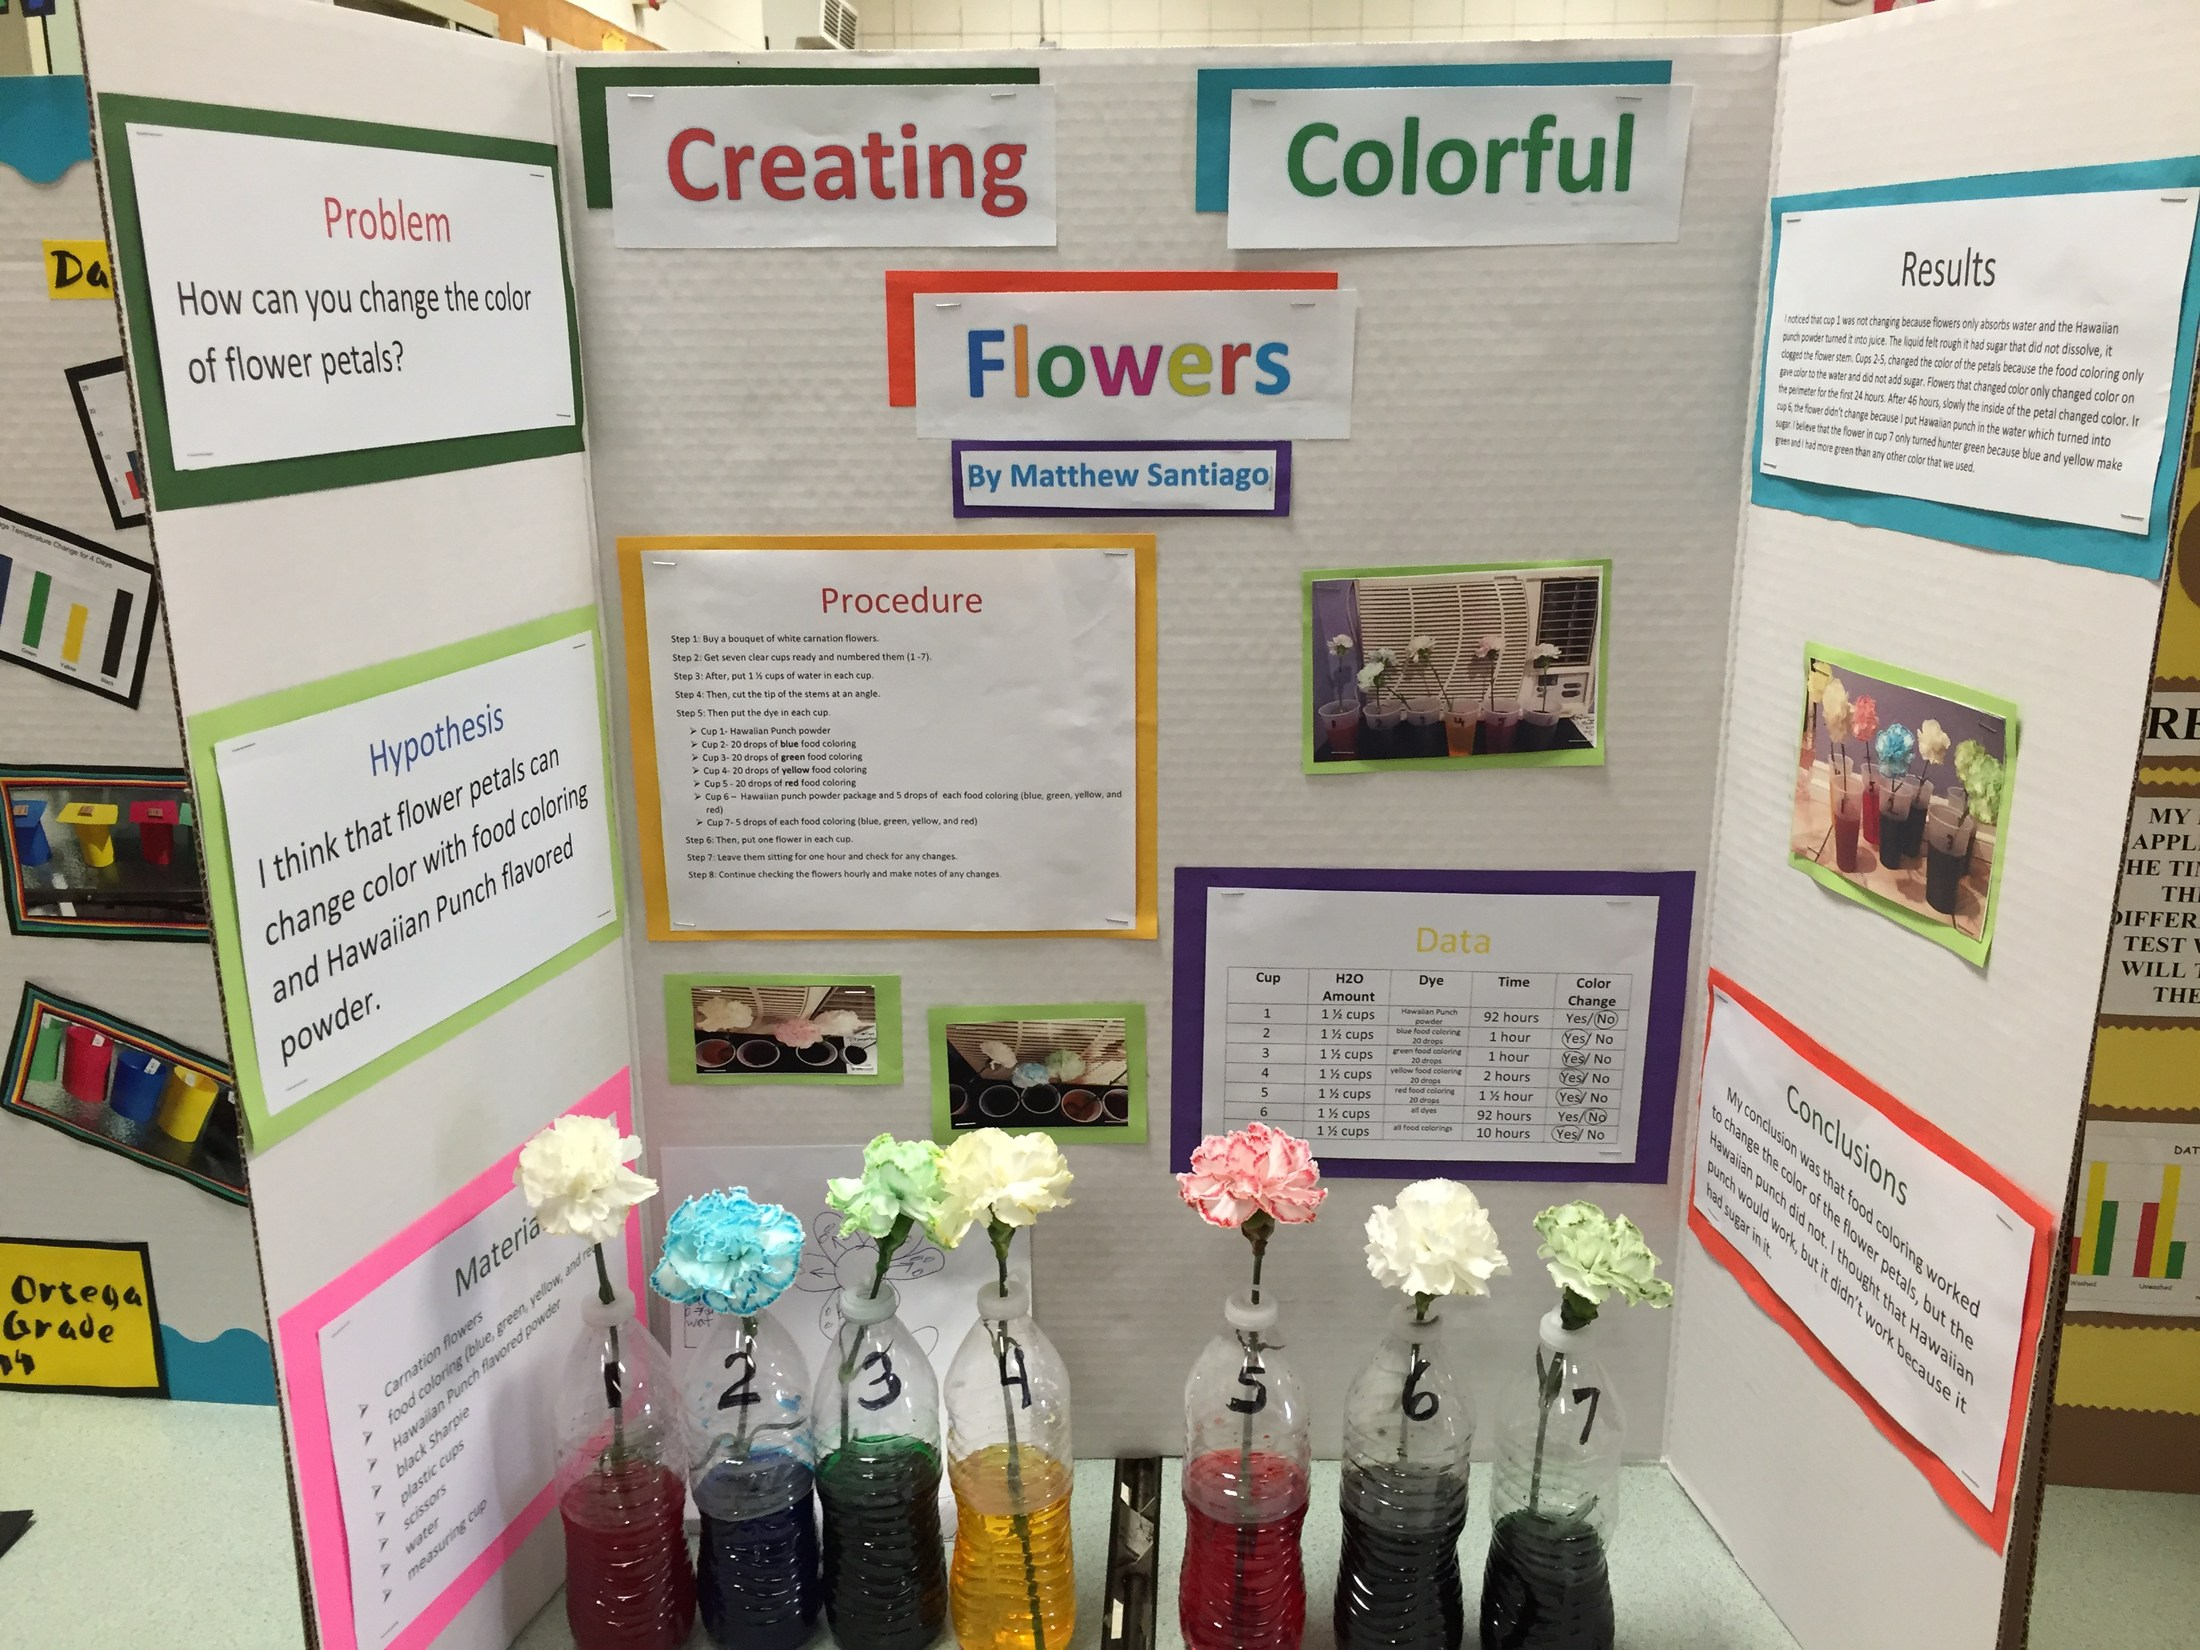 Flower science fair projects flowers ideas for review for How to dye flowers using food coloring